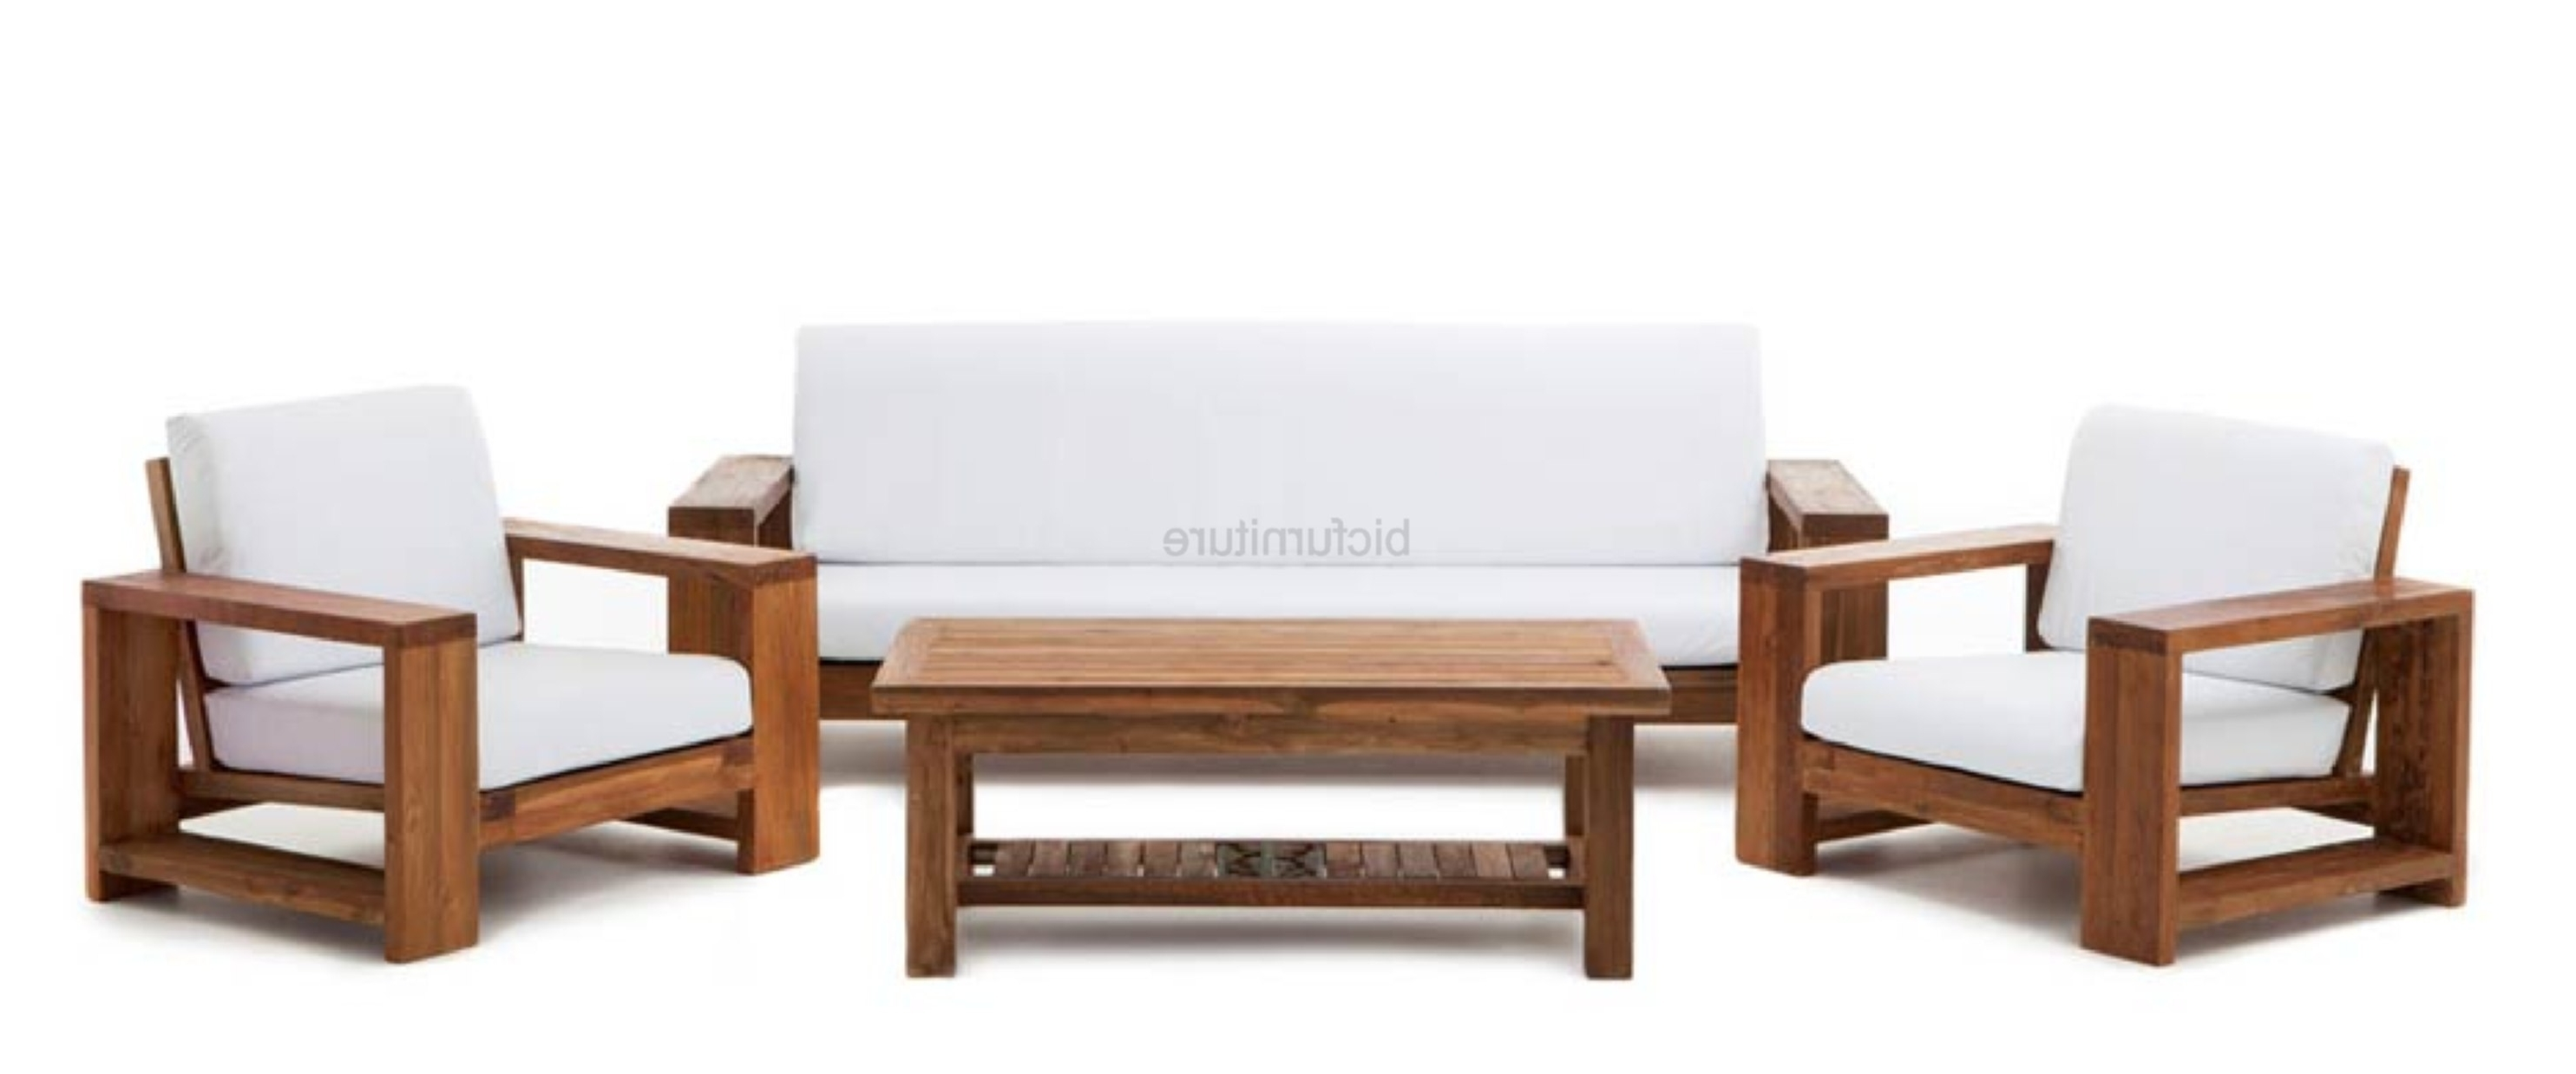 Preferred Comfortable Sofas And Chairs Within Teak Wood Furniture Designs Unique Teak Wood Sofa Set Designs (View 7 of 15)